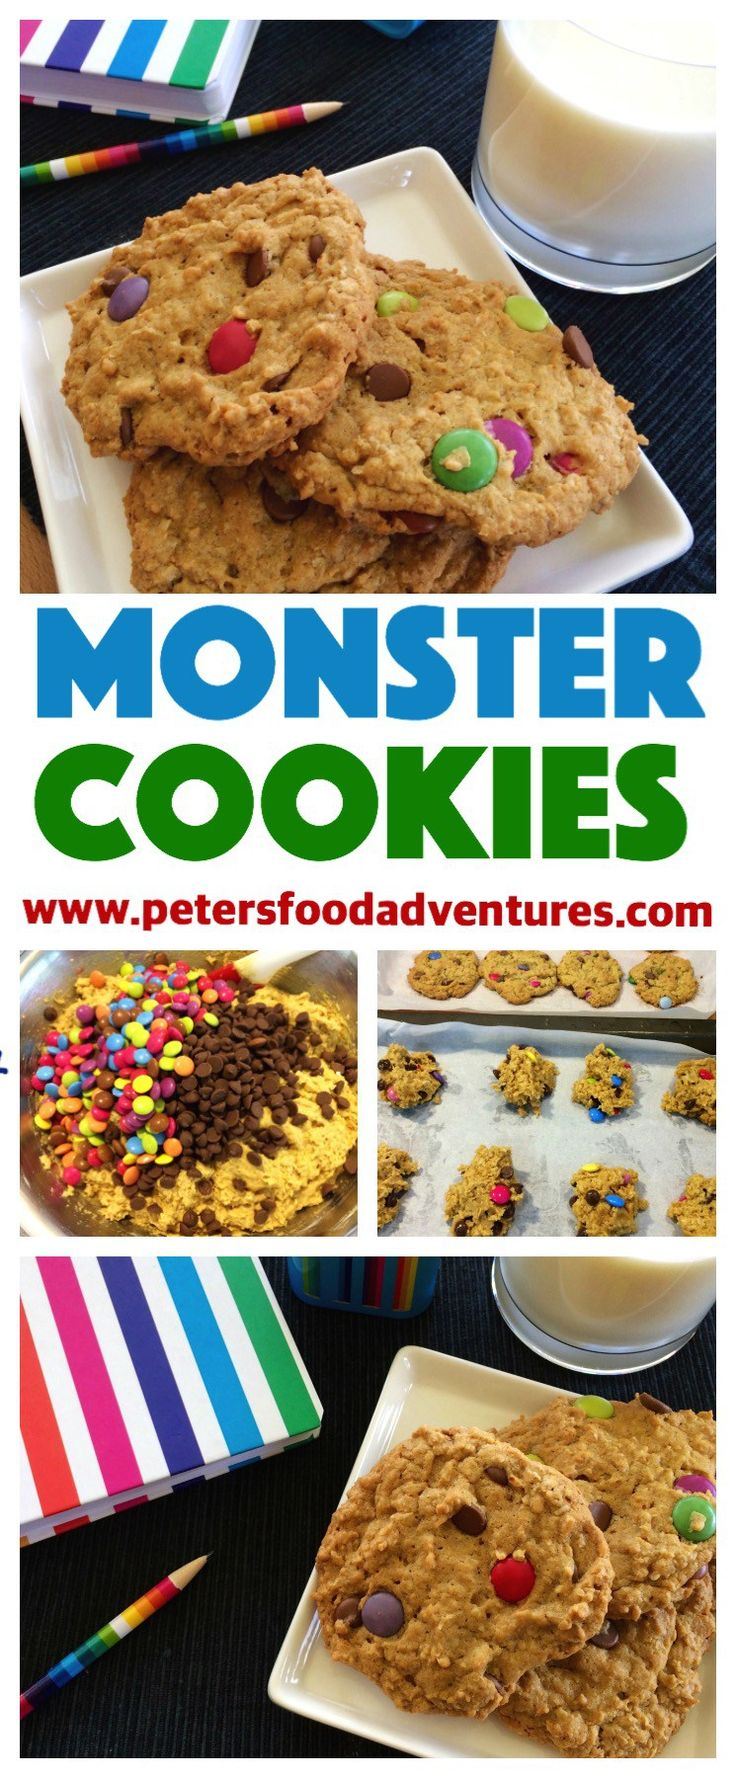 Everything You Want in a Cookie! Oats, Smarties, Chocolate Chips, Peanut Butter…